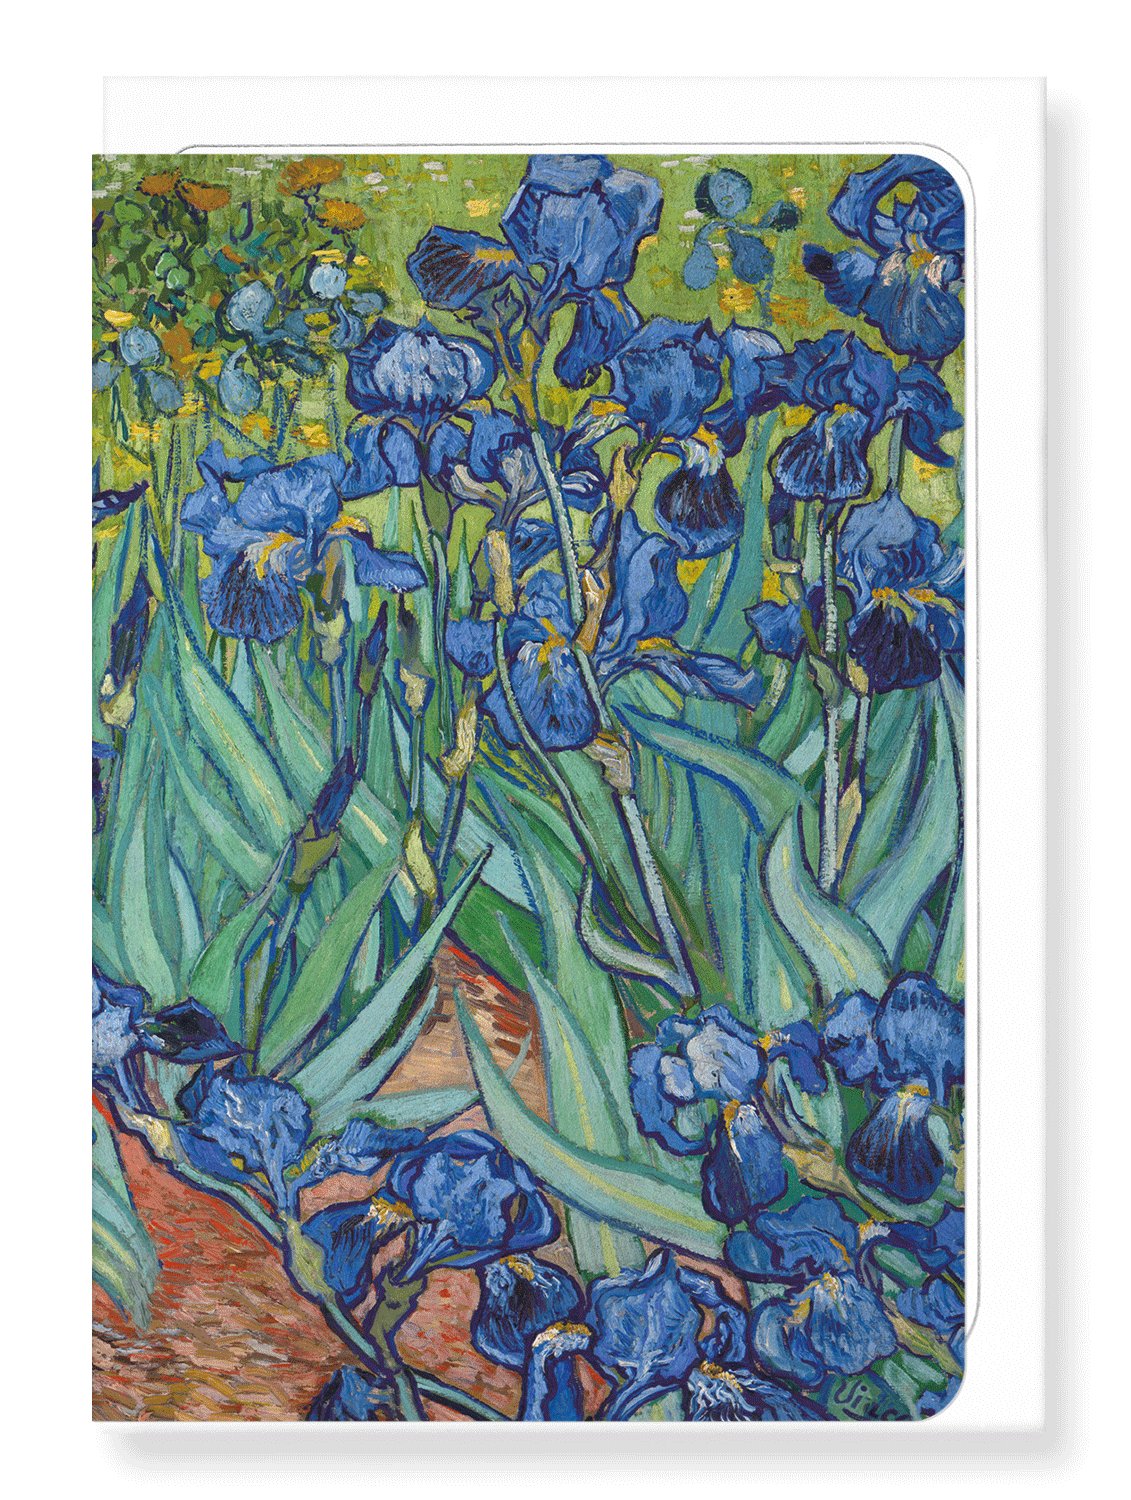 Ezen Designs - Irises by van gogh - Greeting Card - Front